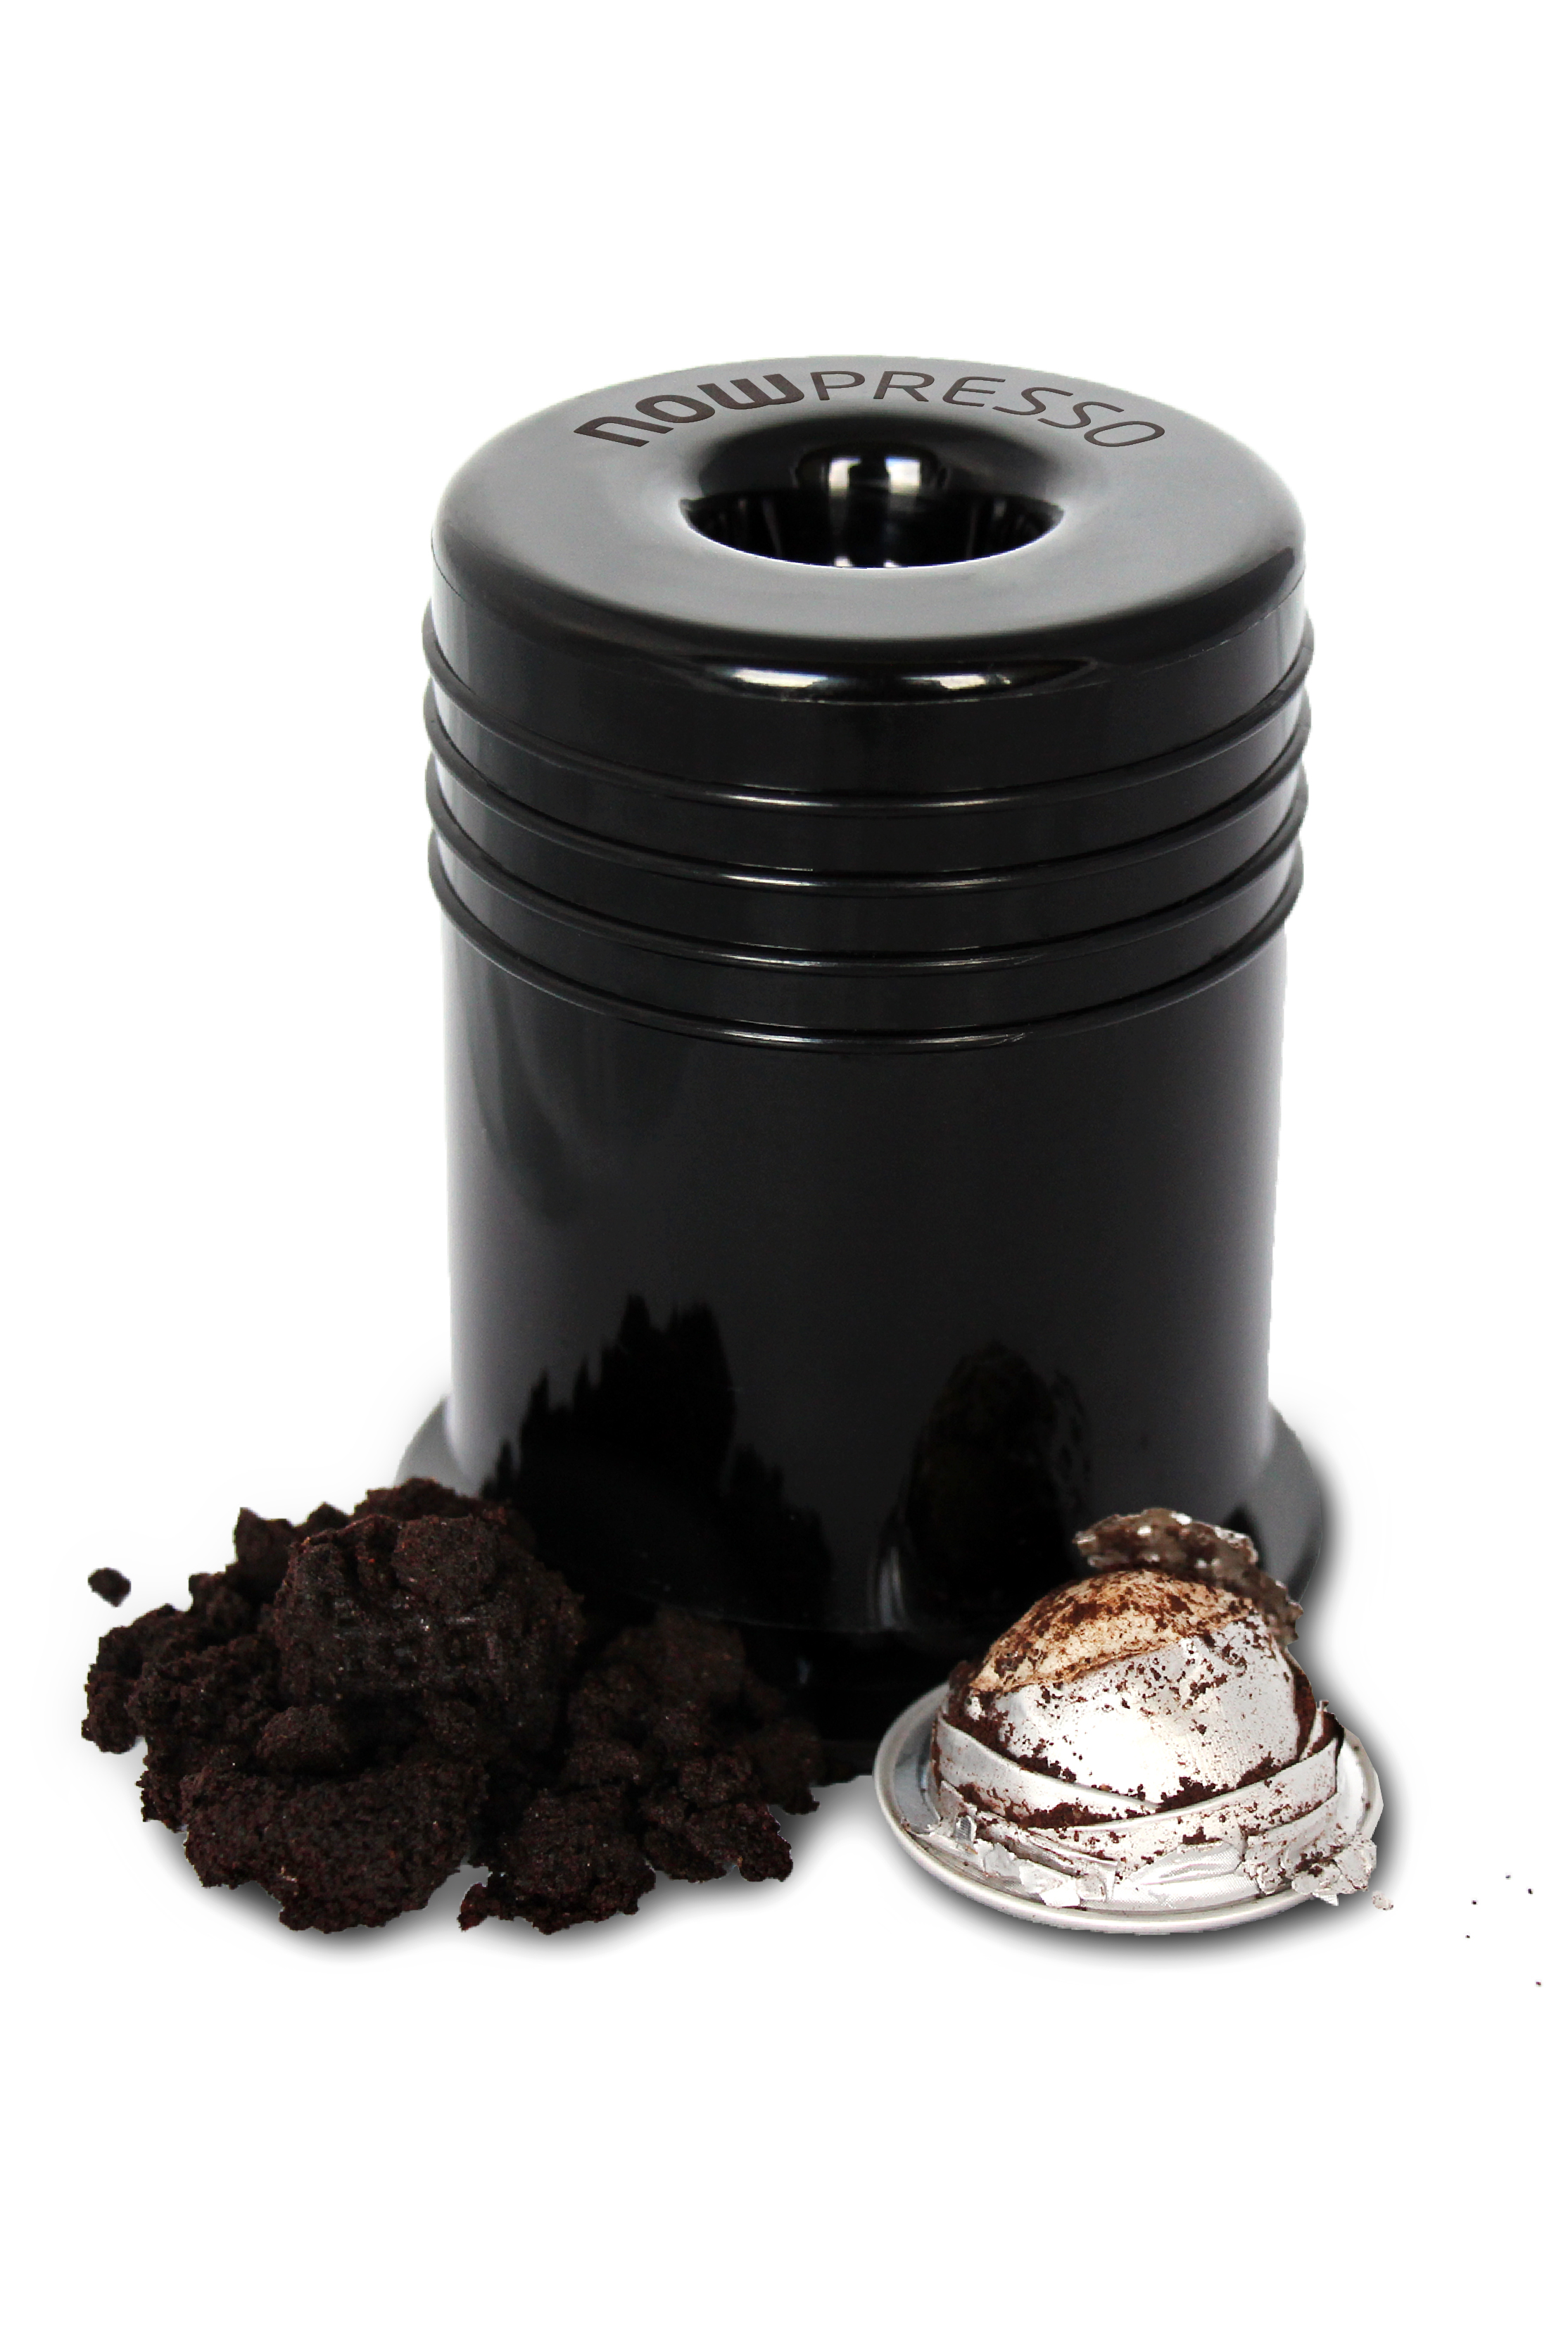 How To Recycle Nespresso Coffee Capsules The Nowpresso Ecopress Is Your Easy Personal Nes Nespresso Coffee Capsules Portable Espresso Machine Coffee Capsules